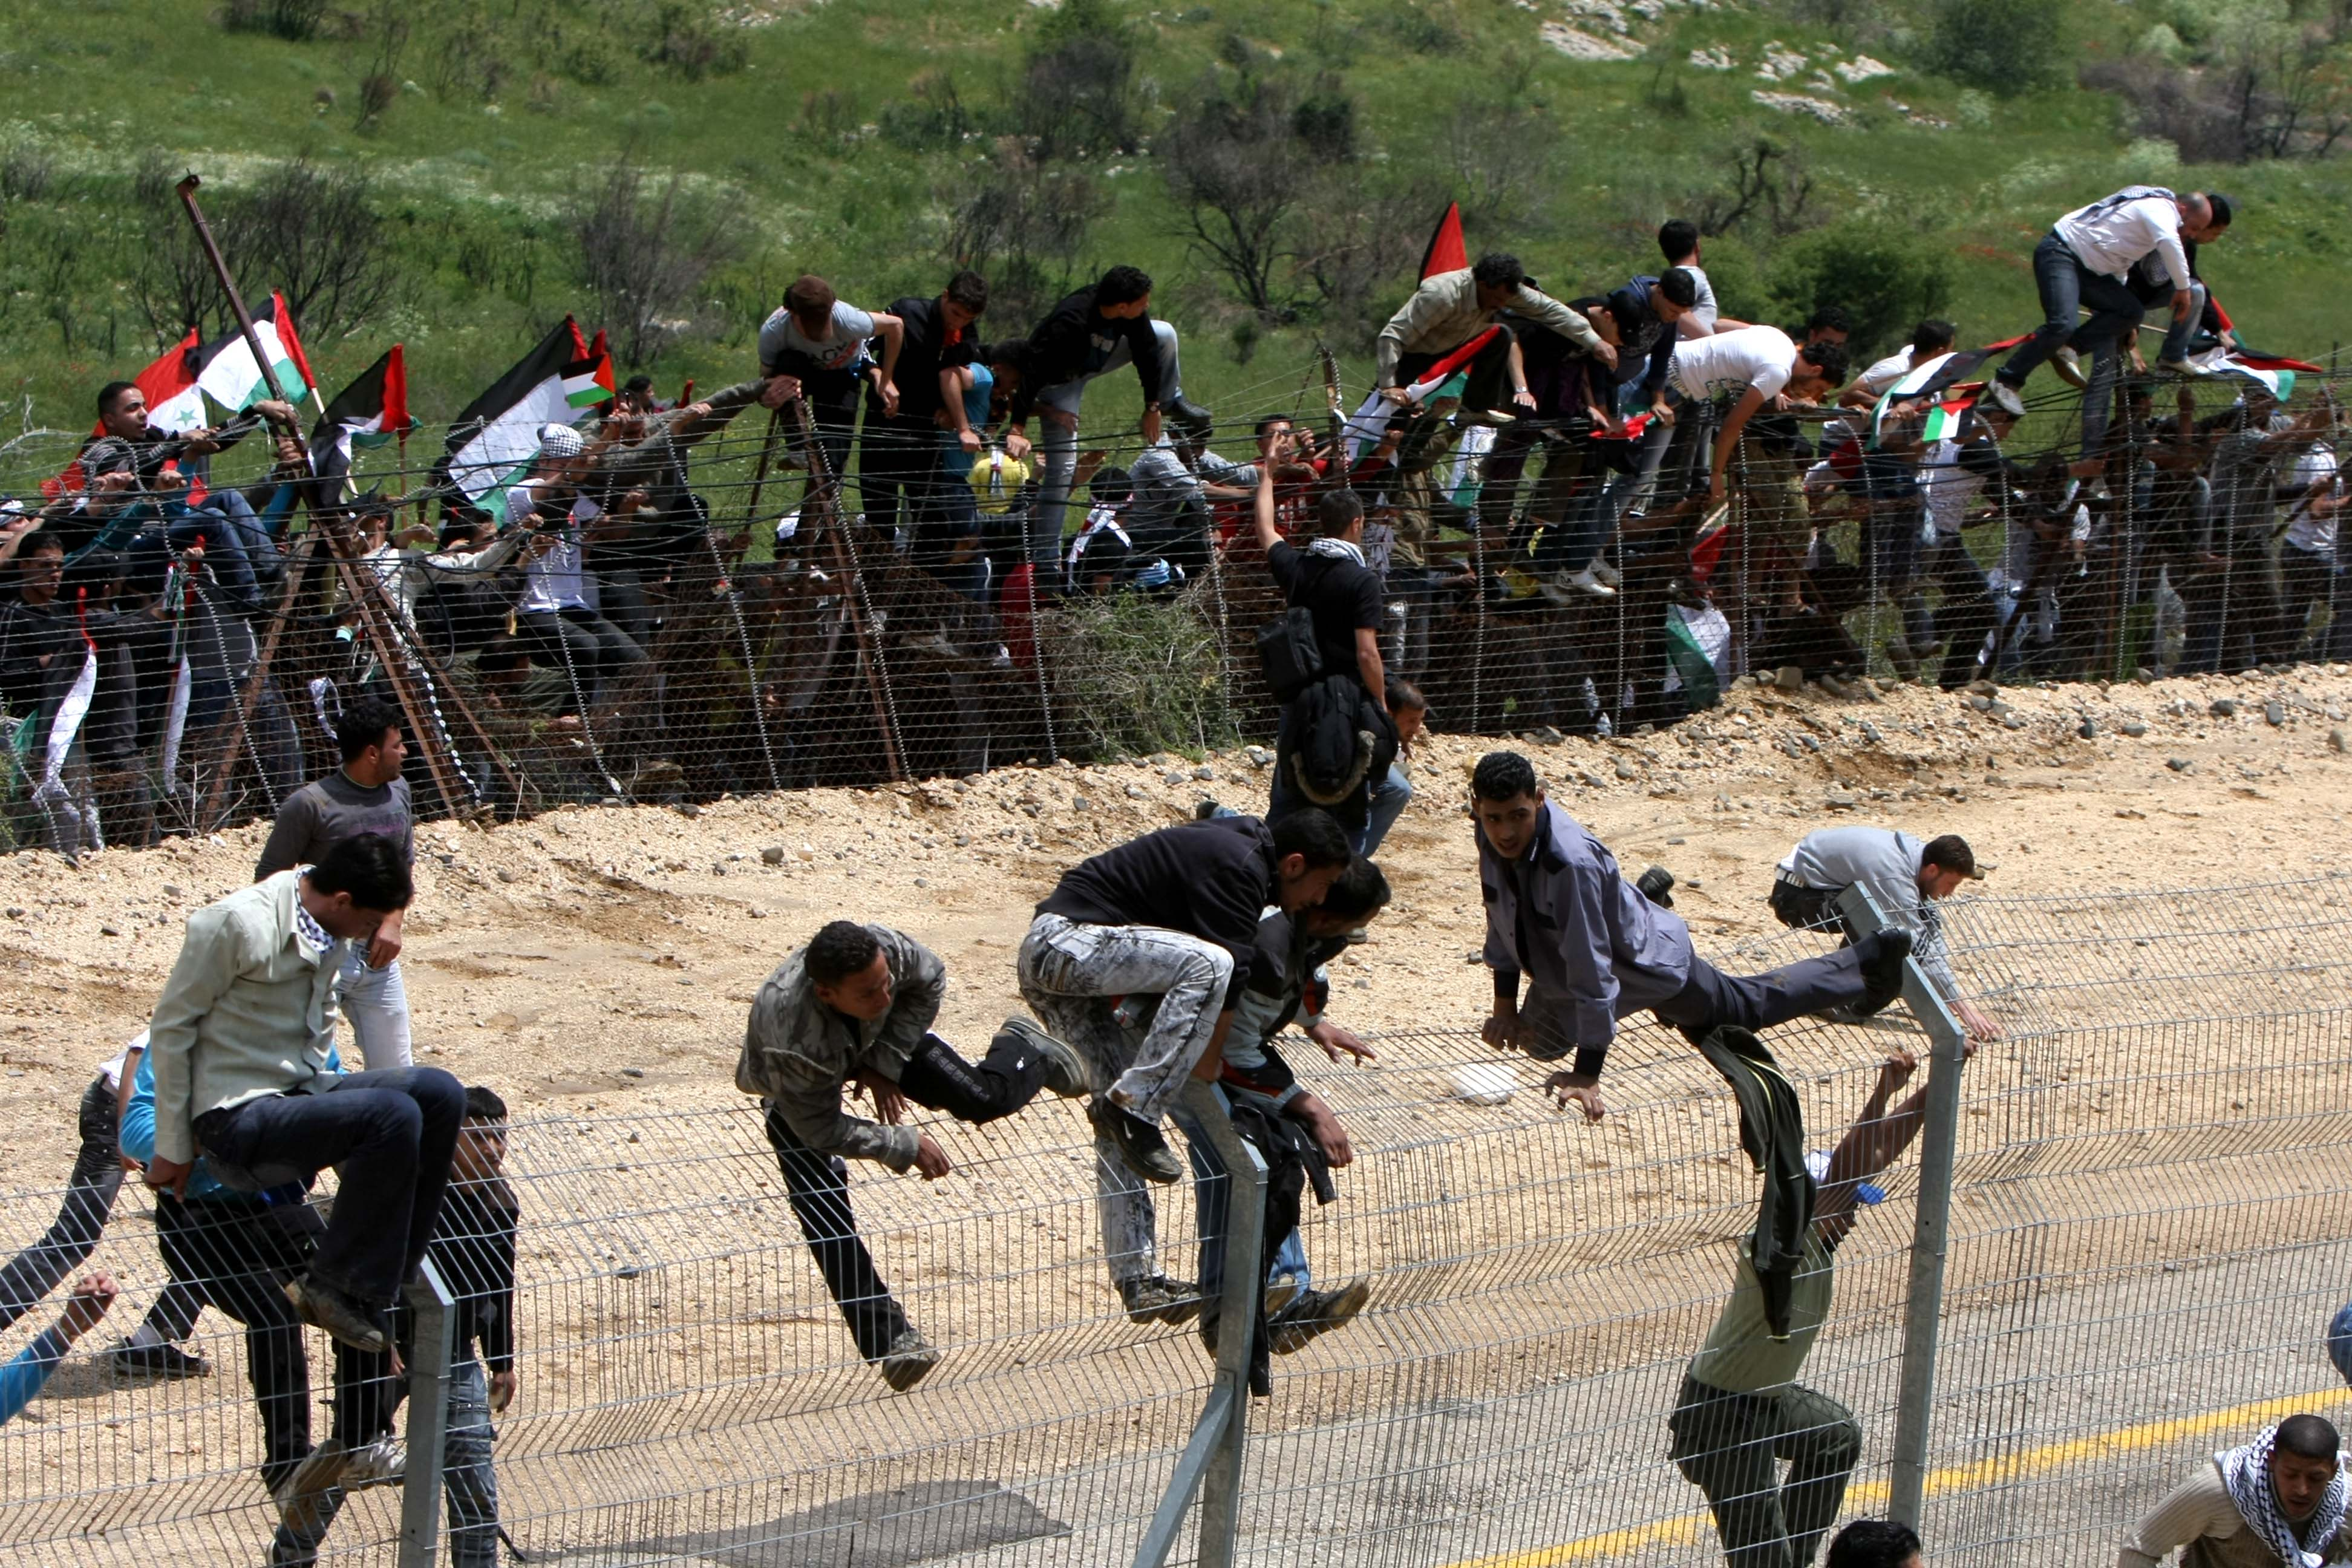 Palestinian protesters infiltrate the Israel-Syria border on May 15 near the Druze village of Majdal Shams. Reportedly at least twelve were killed and several injured when Israeli soldiers opened fire on protesters AFP/ Getty Images.